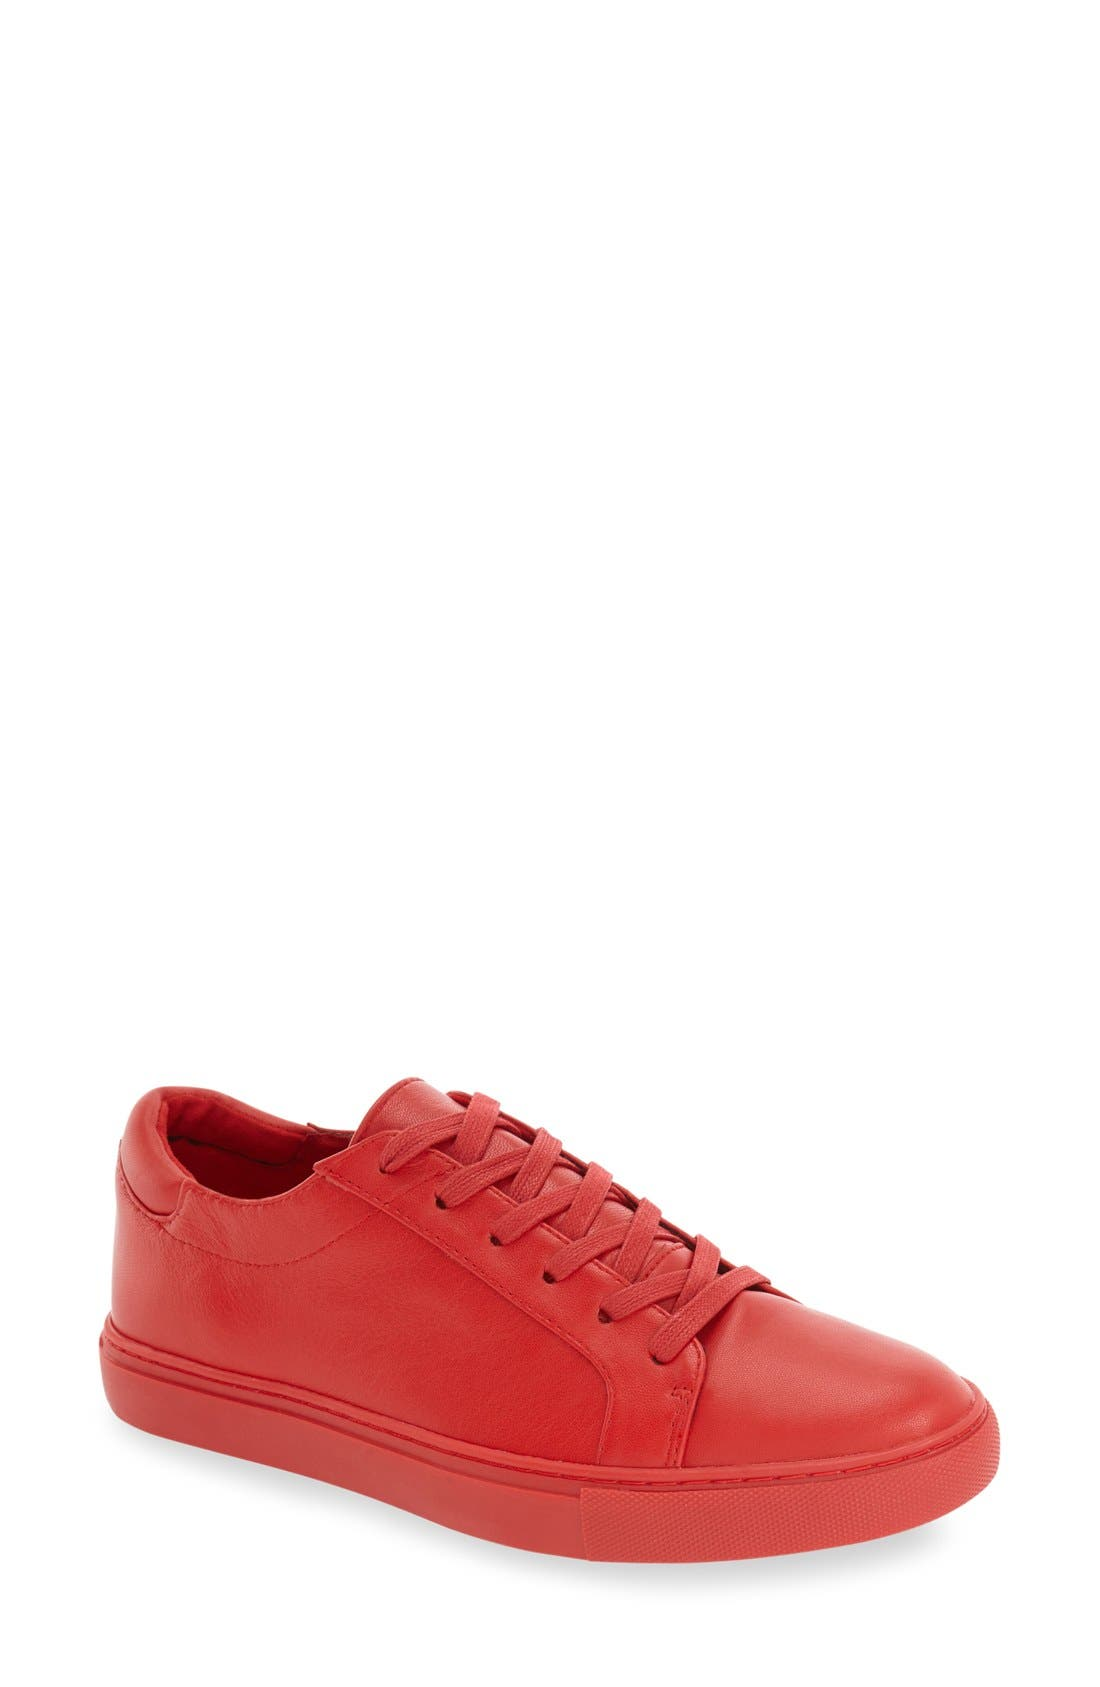 'Kam' Sneaker,                         Main,                         color, Red Leather